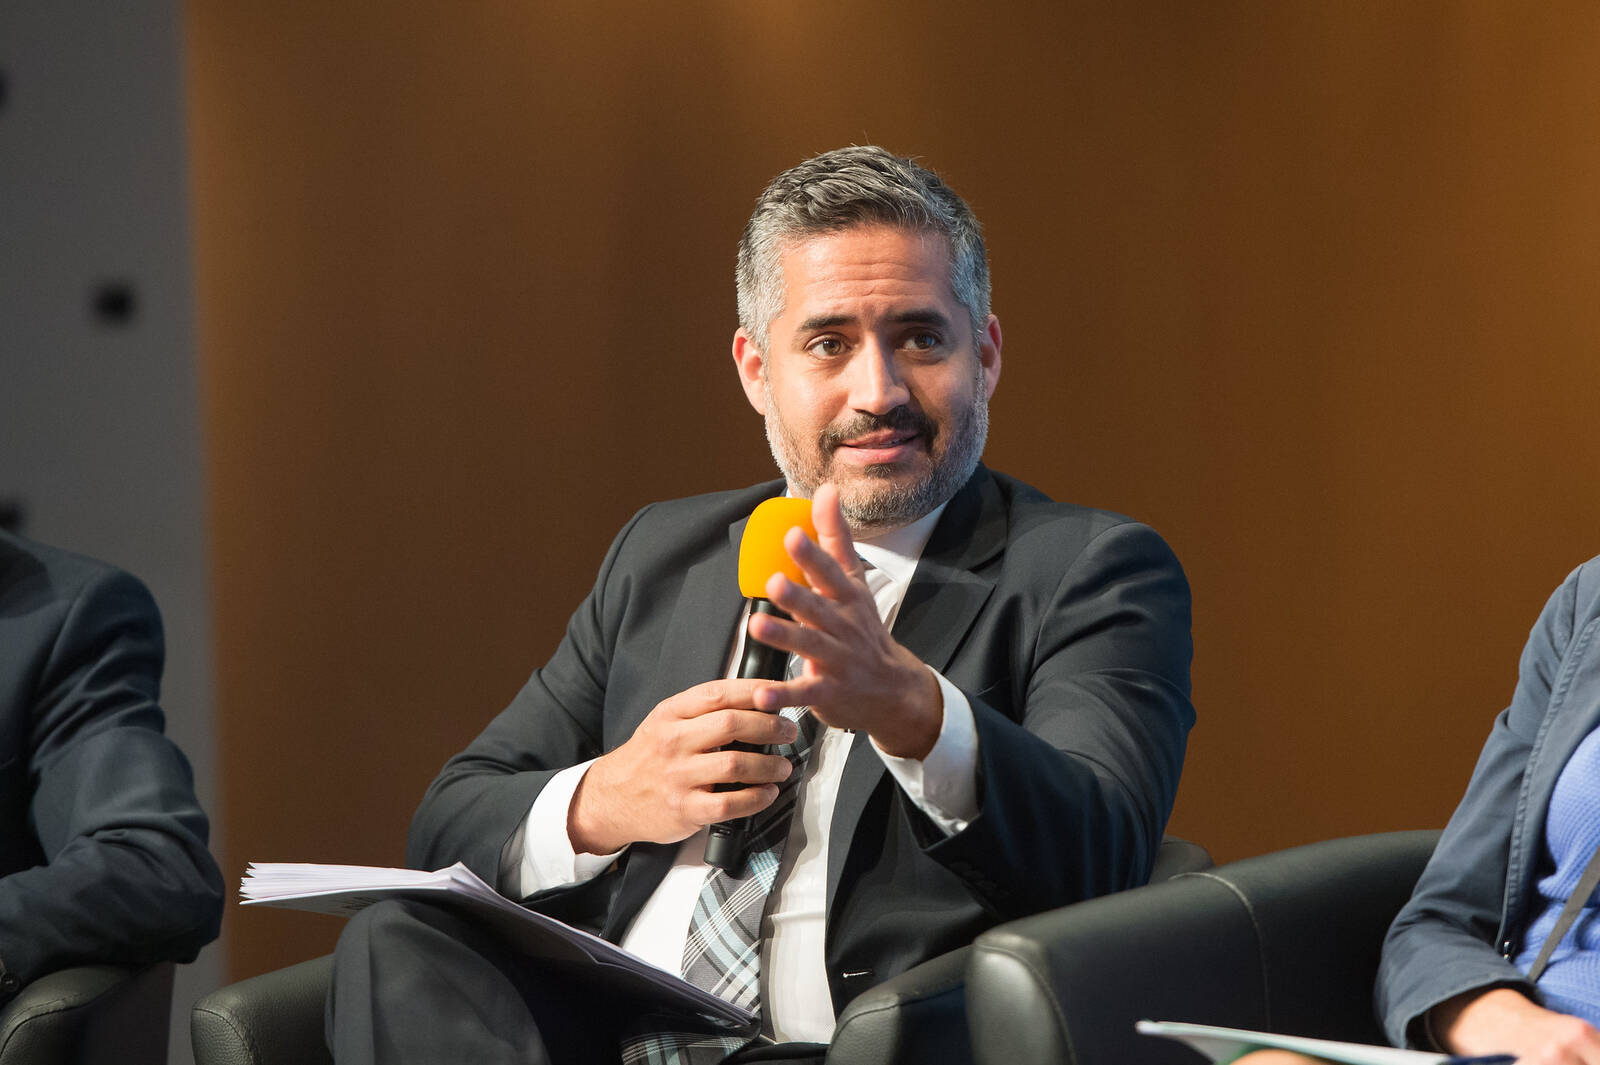 Ramón Cruz is the first Latino to serve as president of the Sierra Club in the 128-year history of the nation's largest environmental organization. Credit: International Transport Forum